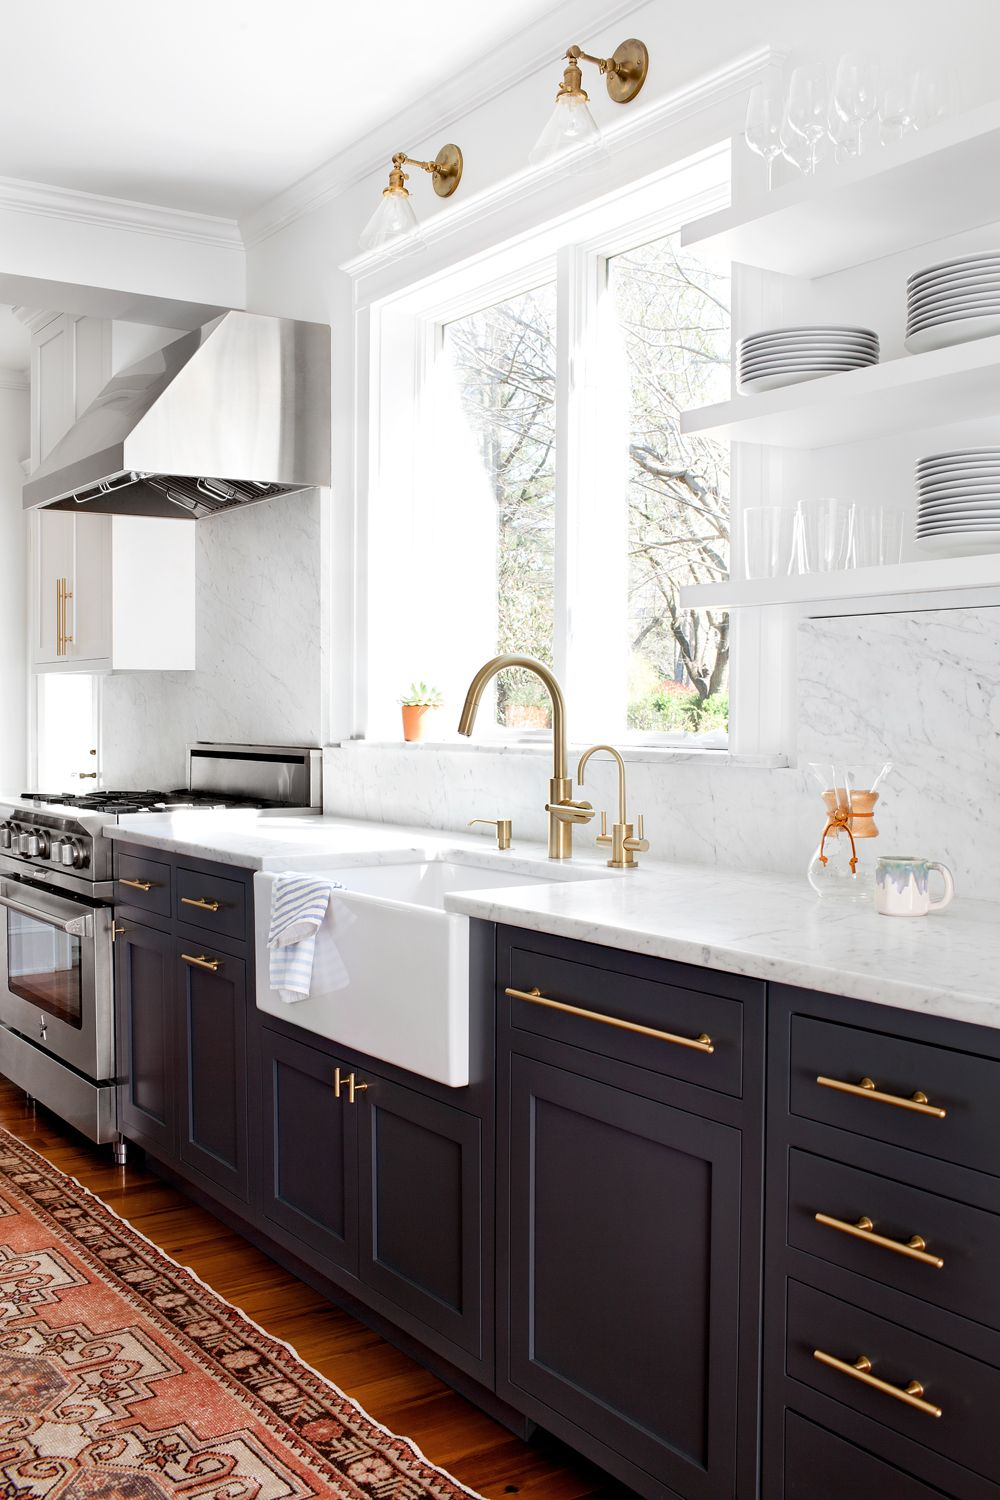 kitchen hardware black chairs cabinet colors pinterest design your is by far the most expensive space in home to renovate having a hard time living with those dated honey oak cabin